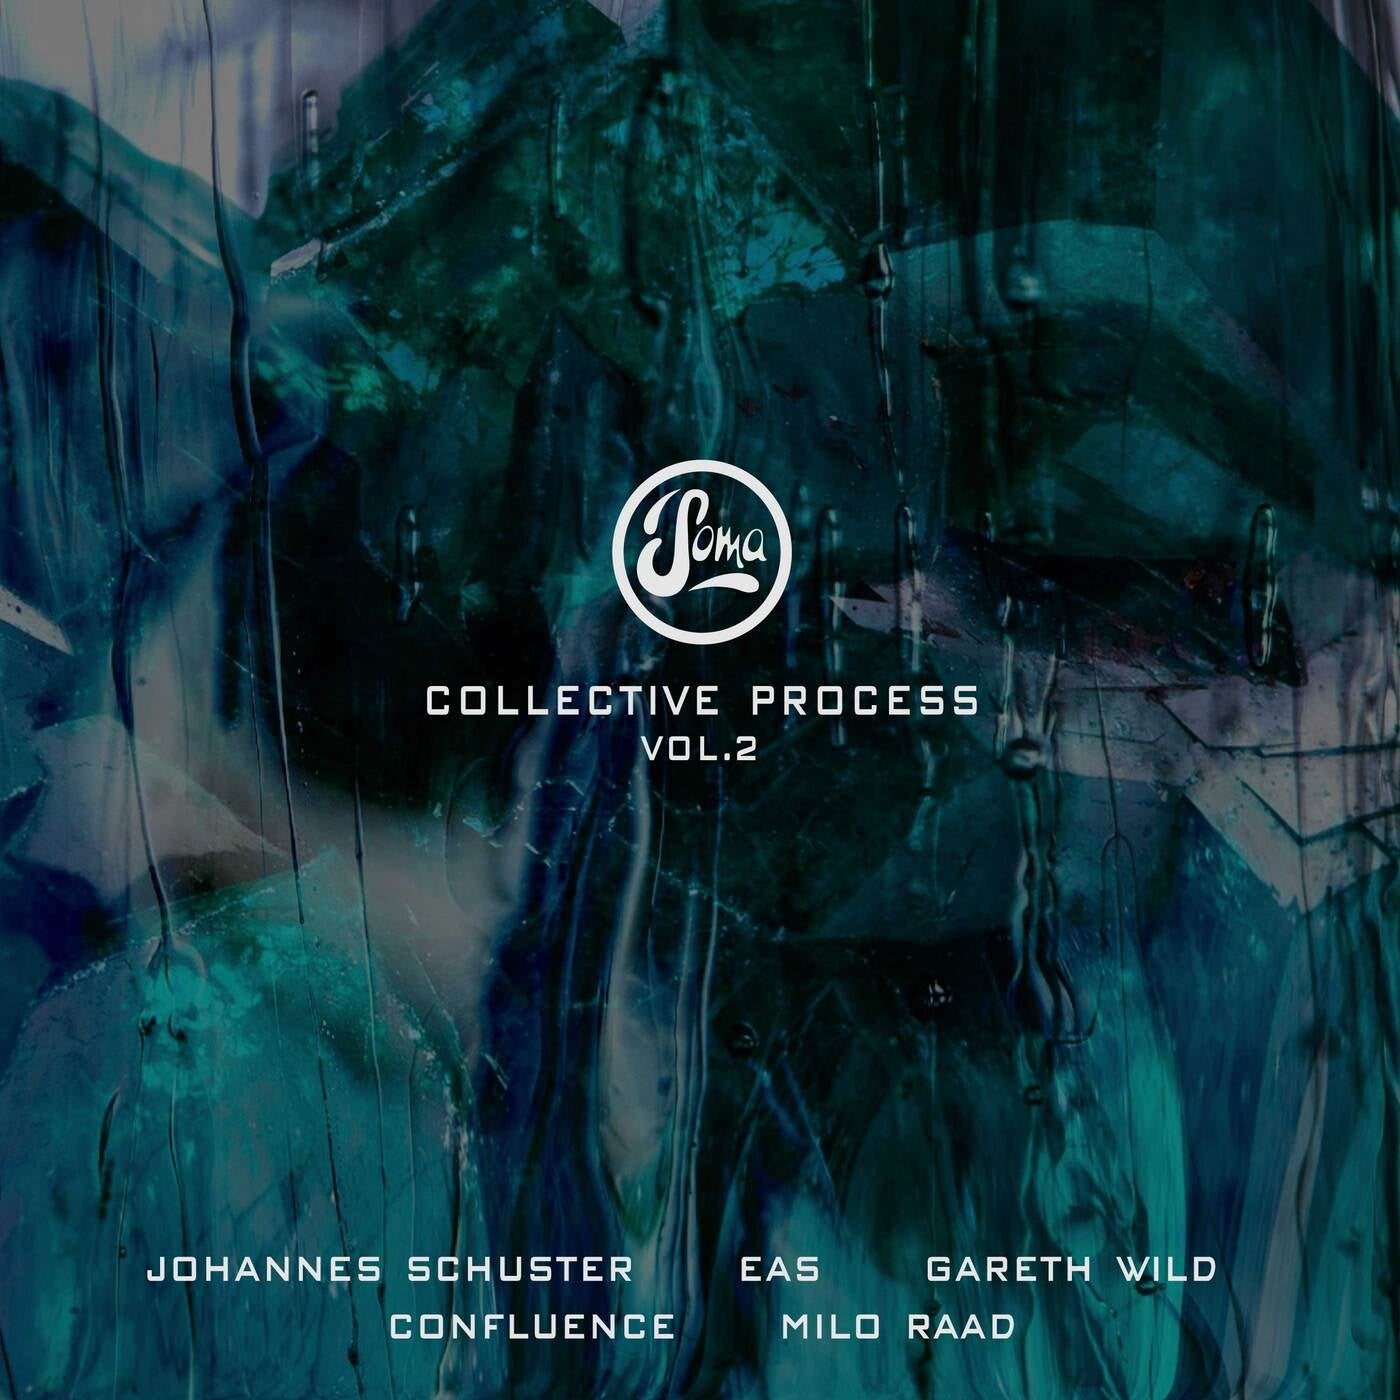 Download Collective Process Vol. 2 on Electrobuzz